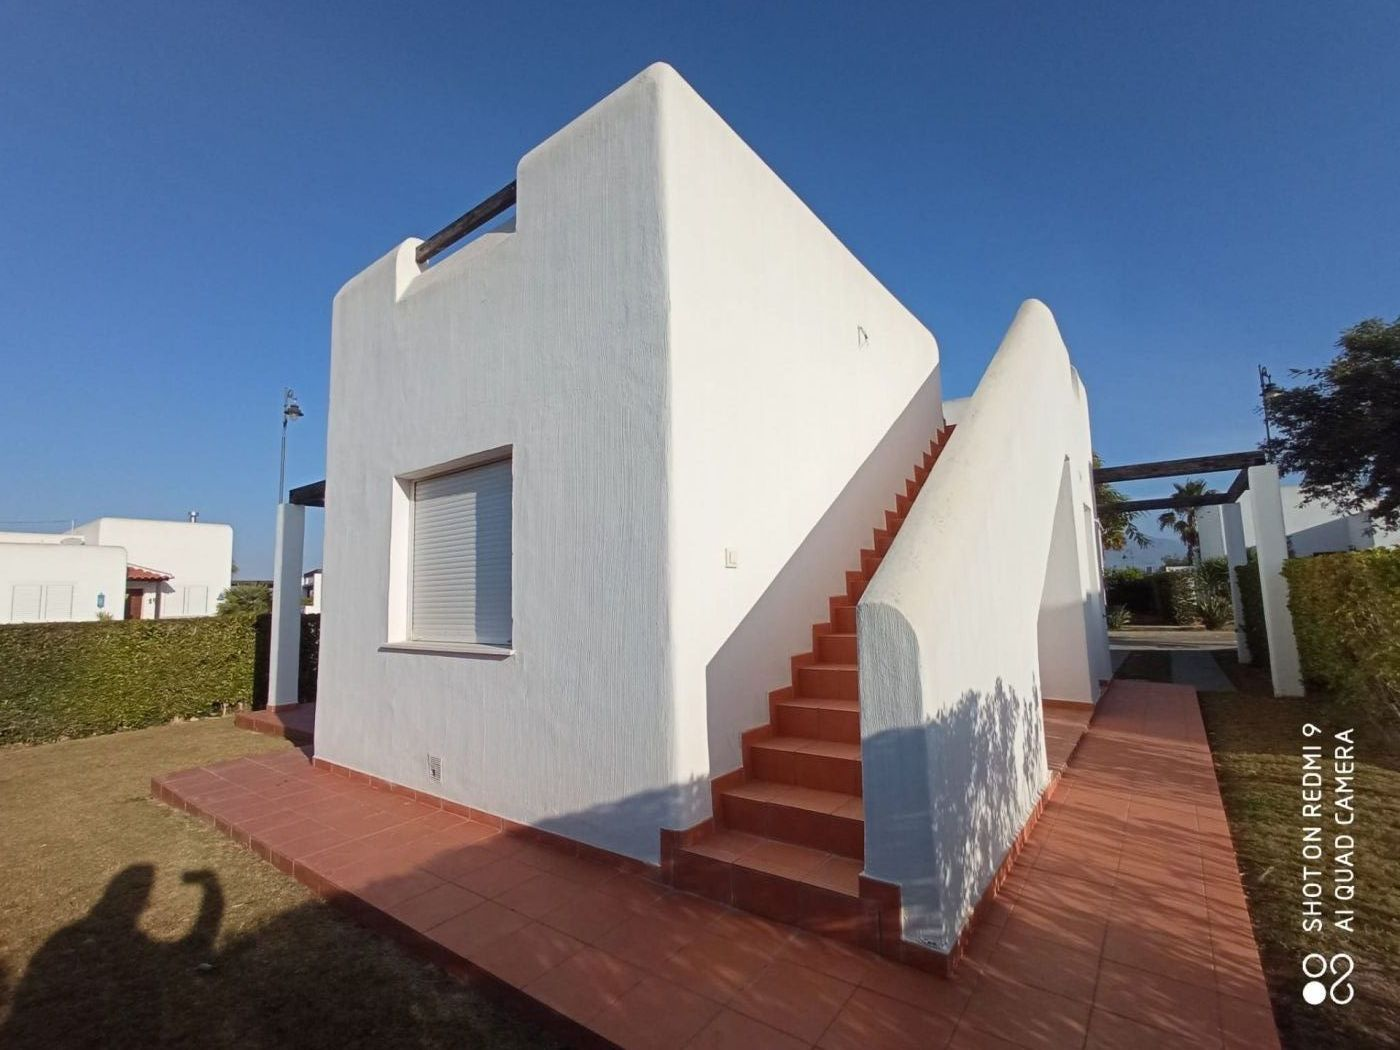 Image 1 Villa ref 3500 for sale in Condado De Alhama Spain - Quality Homes Costa Cálida